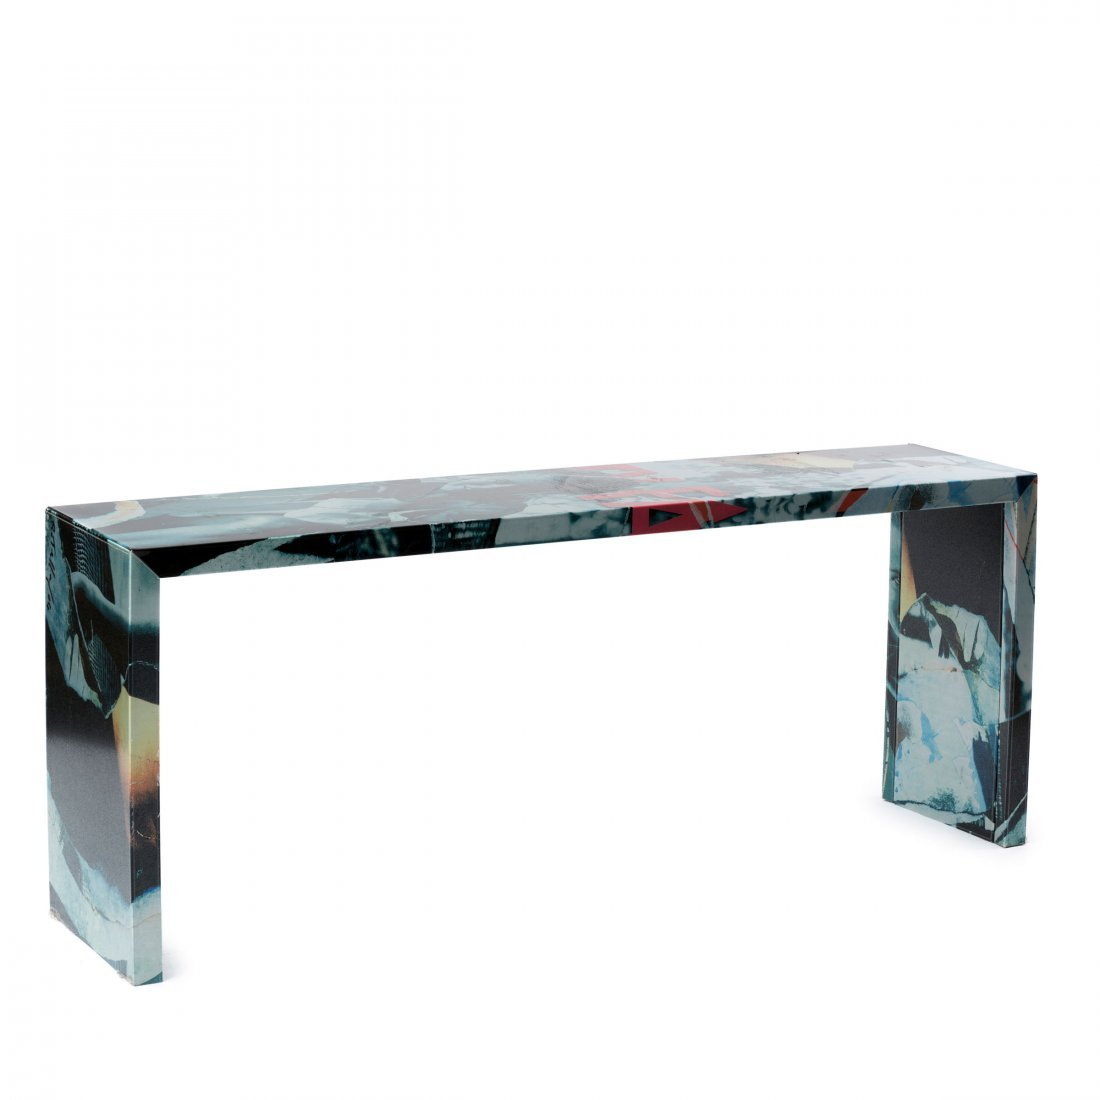 Console table from the 'Decollage' series, 2005